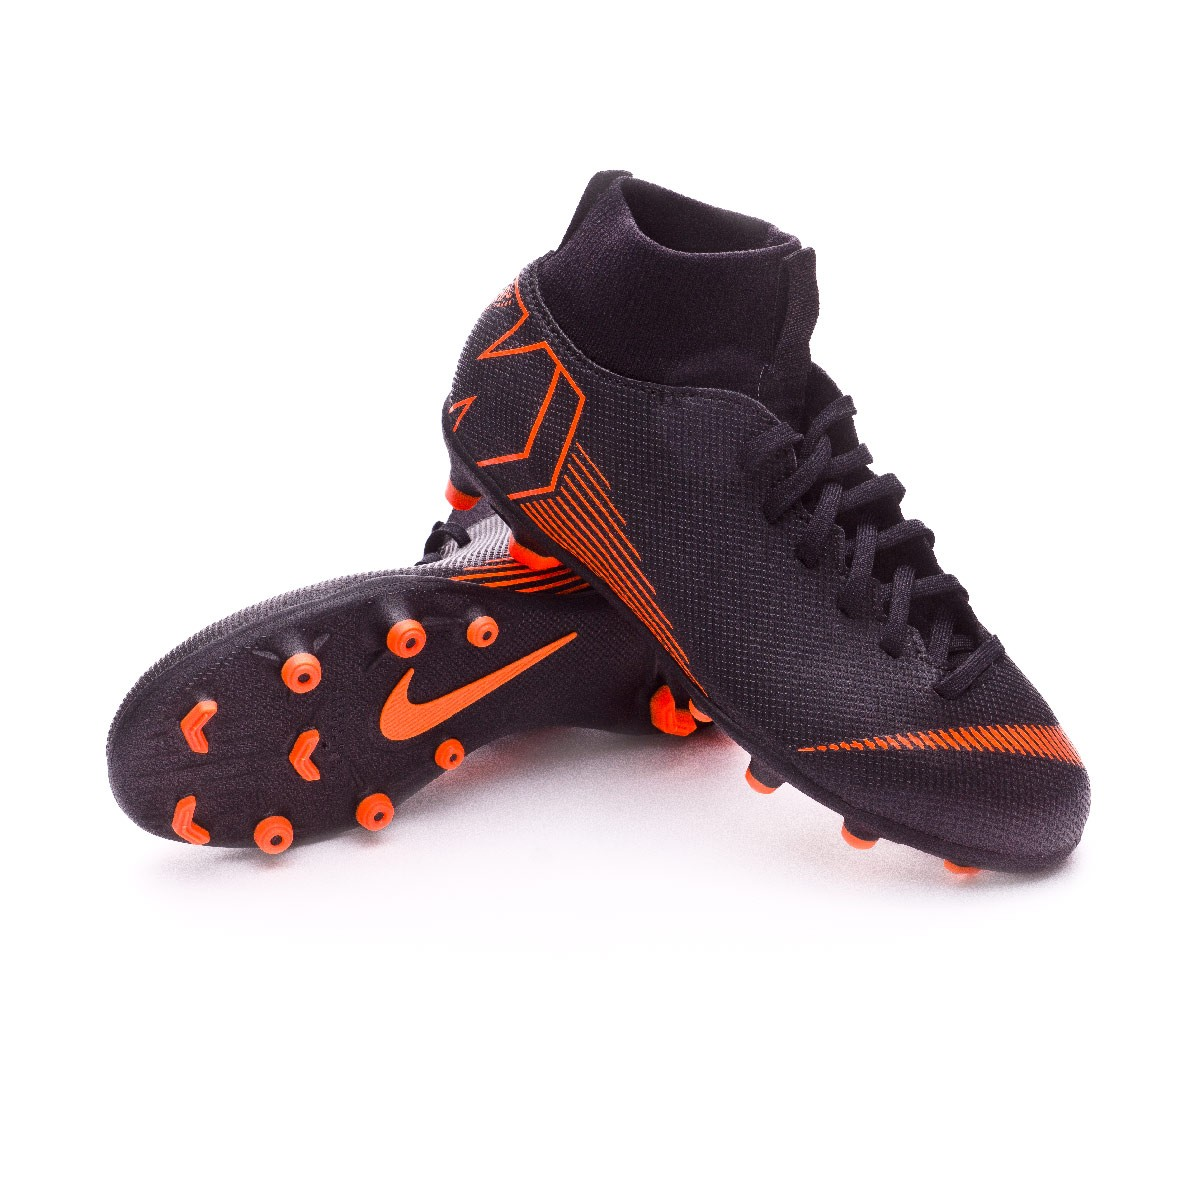 8650a94c572bf Zapatos de fútbol Nike Mercurial Superfly VI Club MG Niño Black-Total  orange-White - Tienda de fútbol Fútbol Emotion